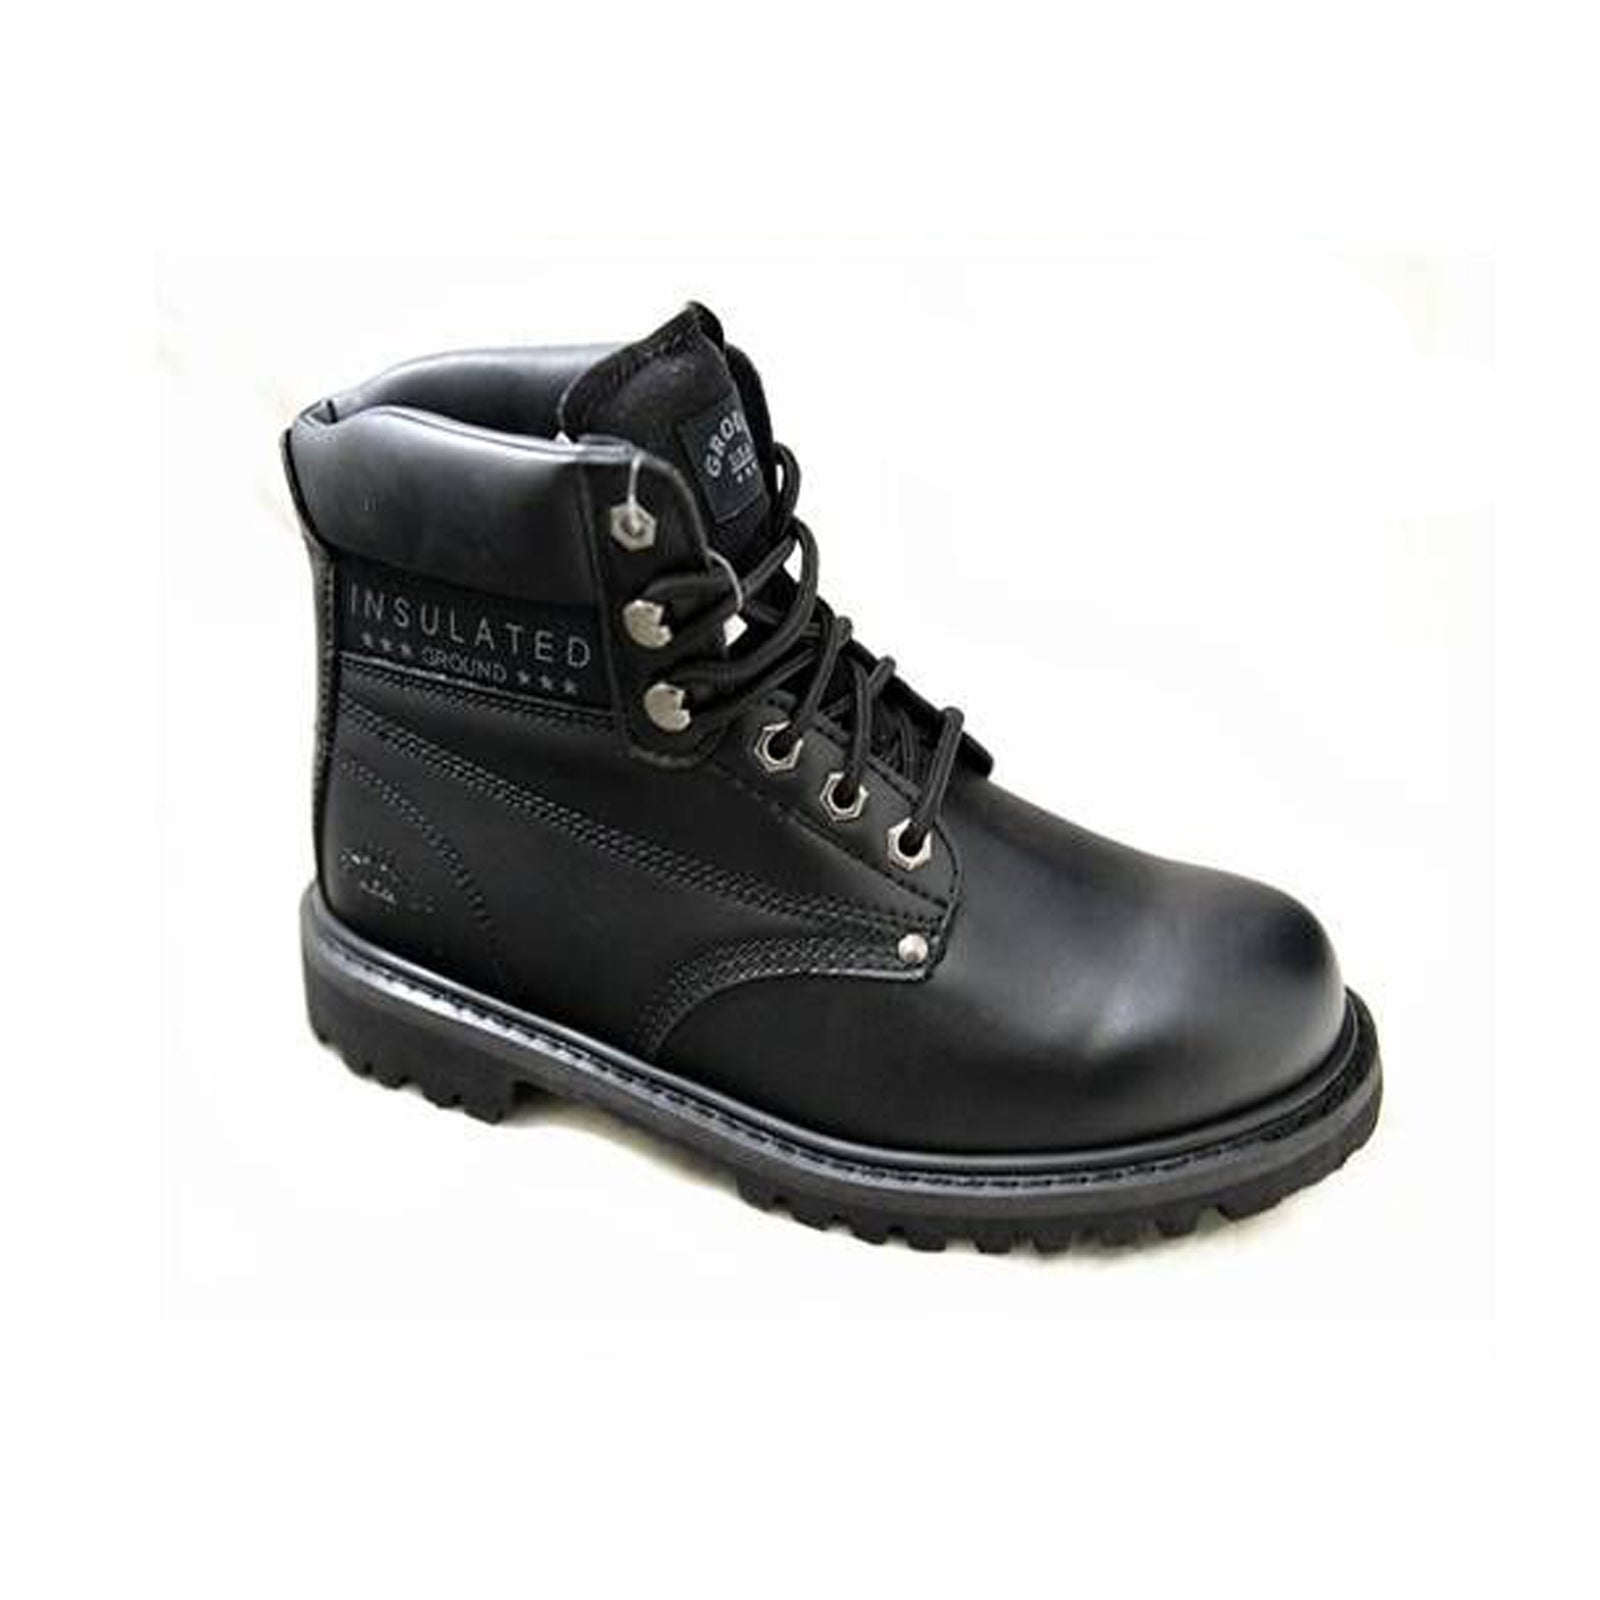 Wholesale Men's Shoes Insulated Work Lace Up Boots NCP62